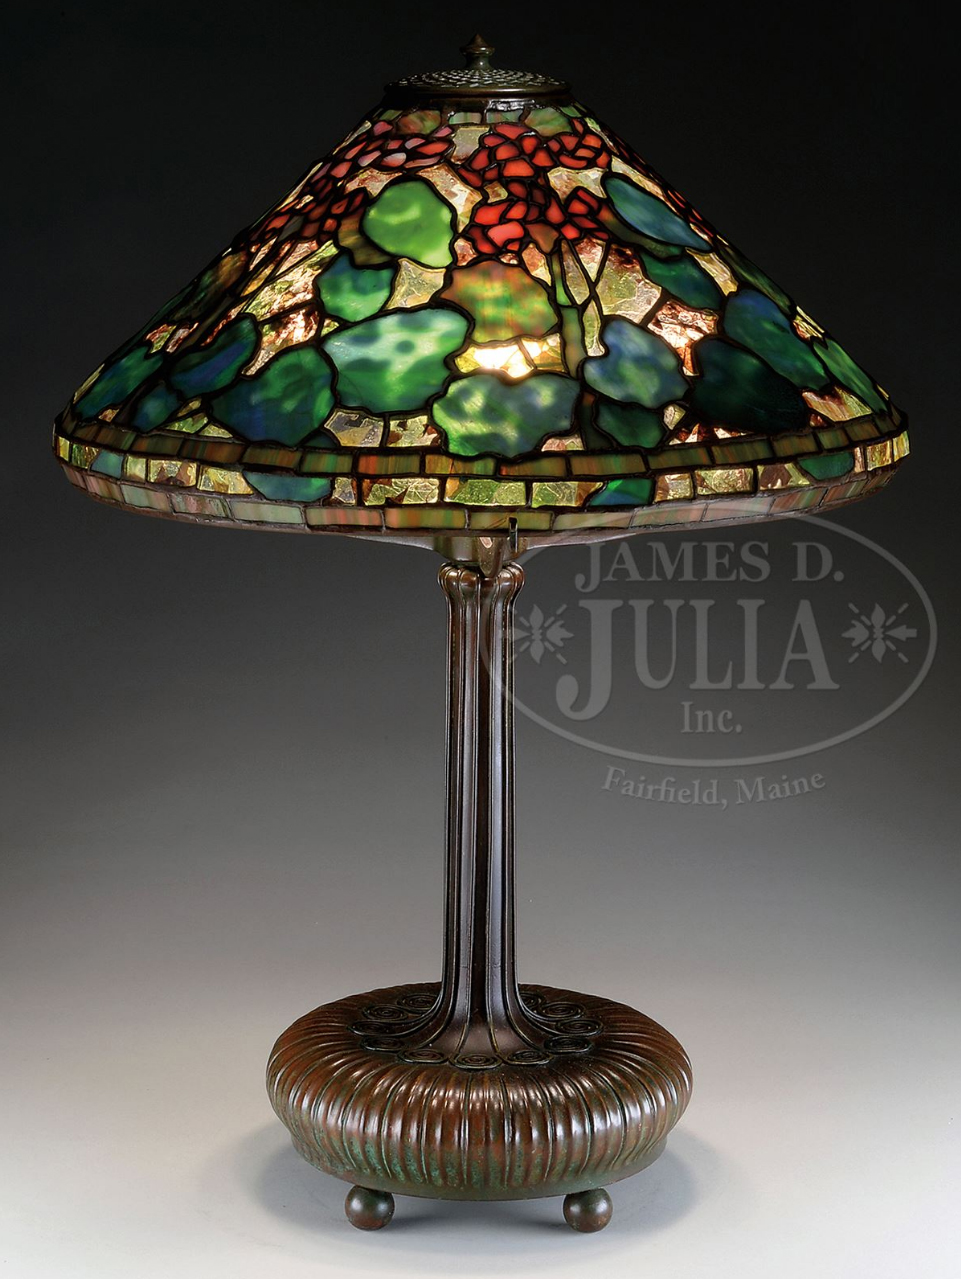 Tiffany Studios Geranium table lamp, Julia's lot #2005